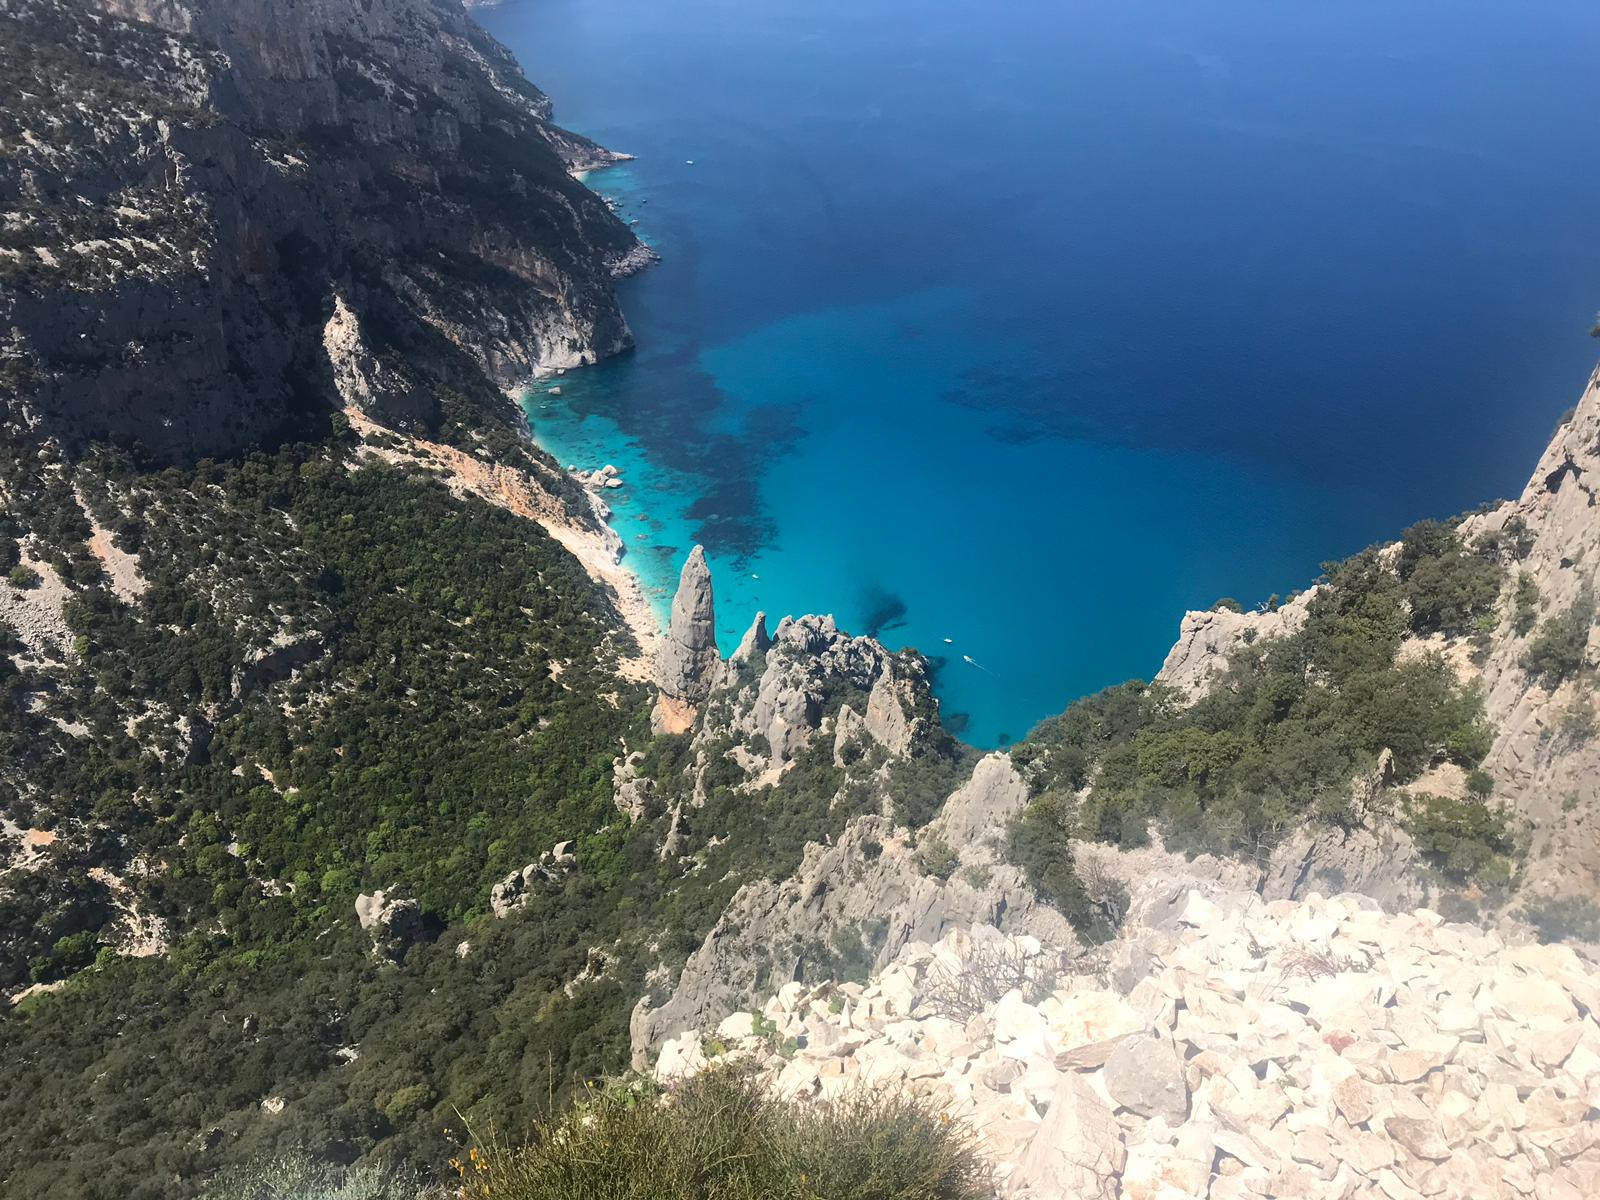 Aerial view down a mountain side to clear blue water in Sardinia